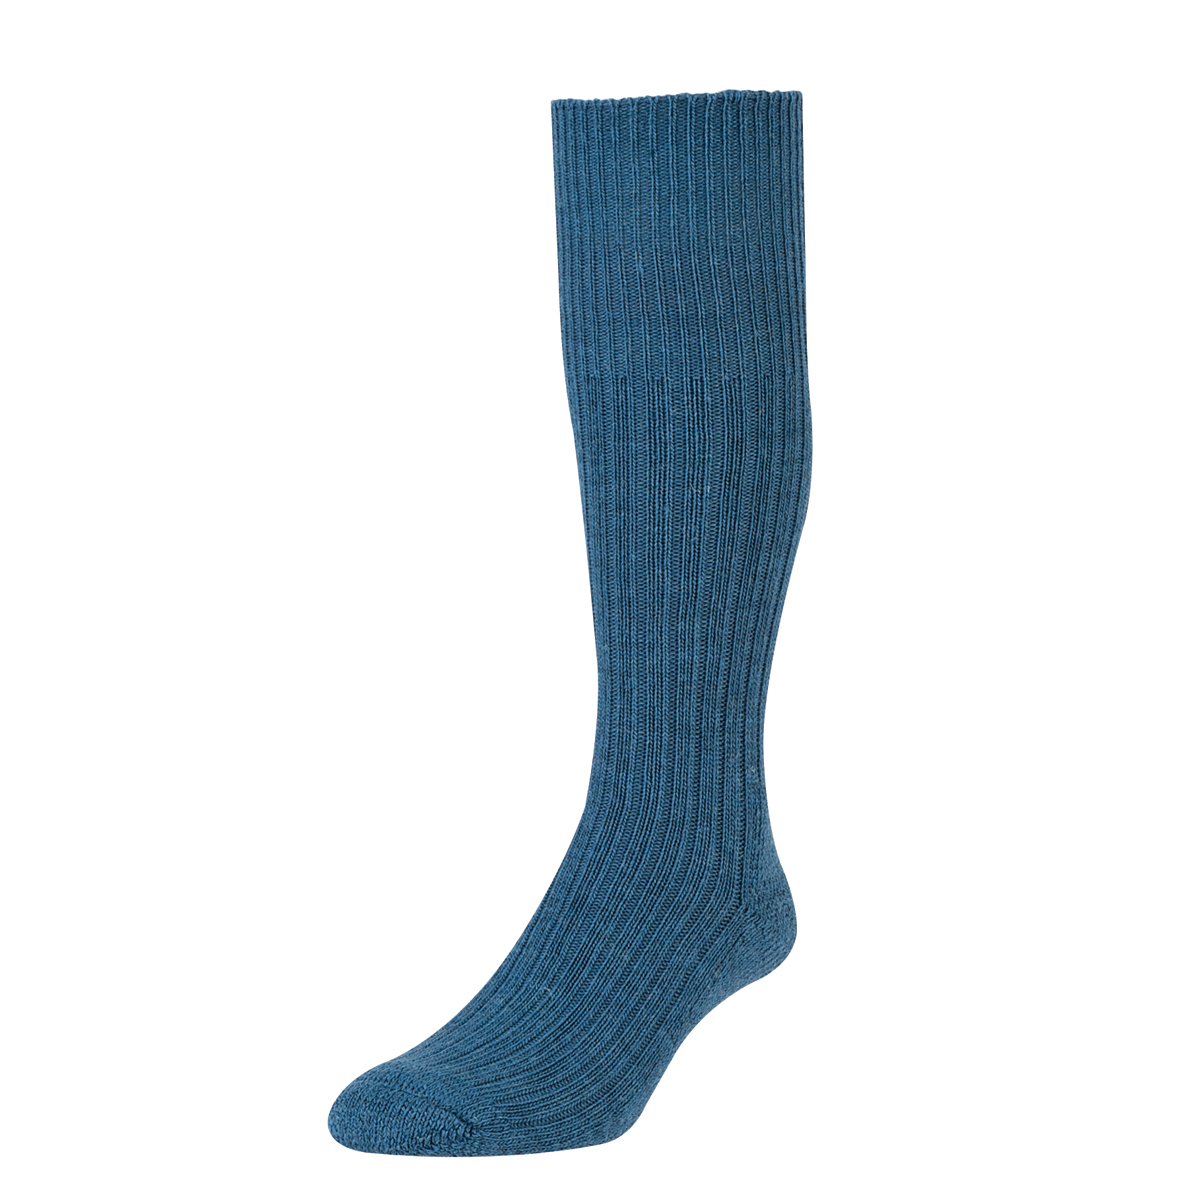 HJ Hall Commando Wool Socks, 6-11 UK Airforce 12 pairs HJ3000